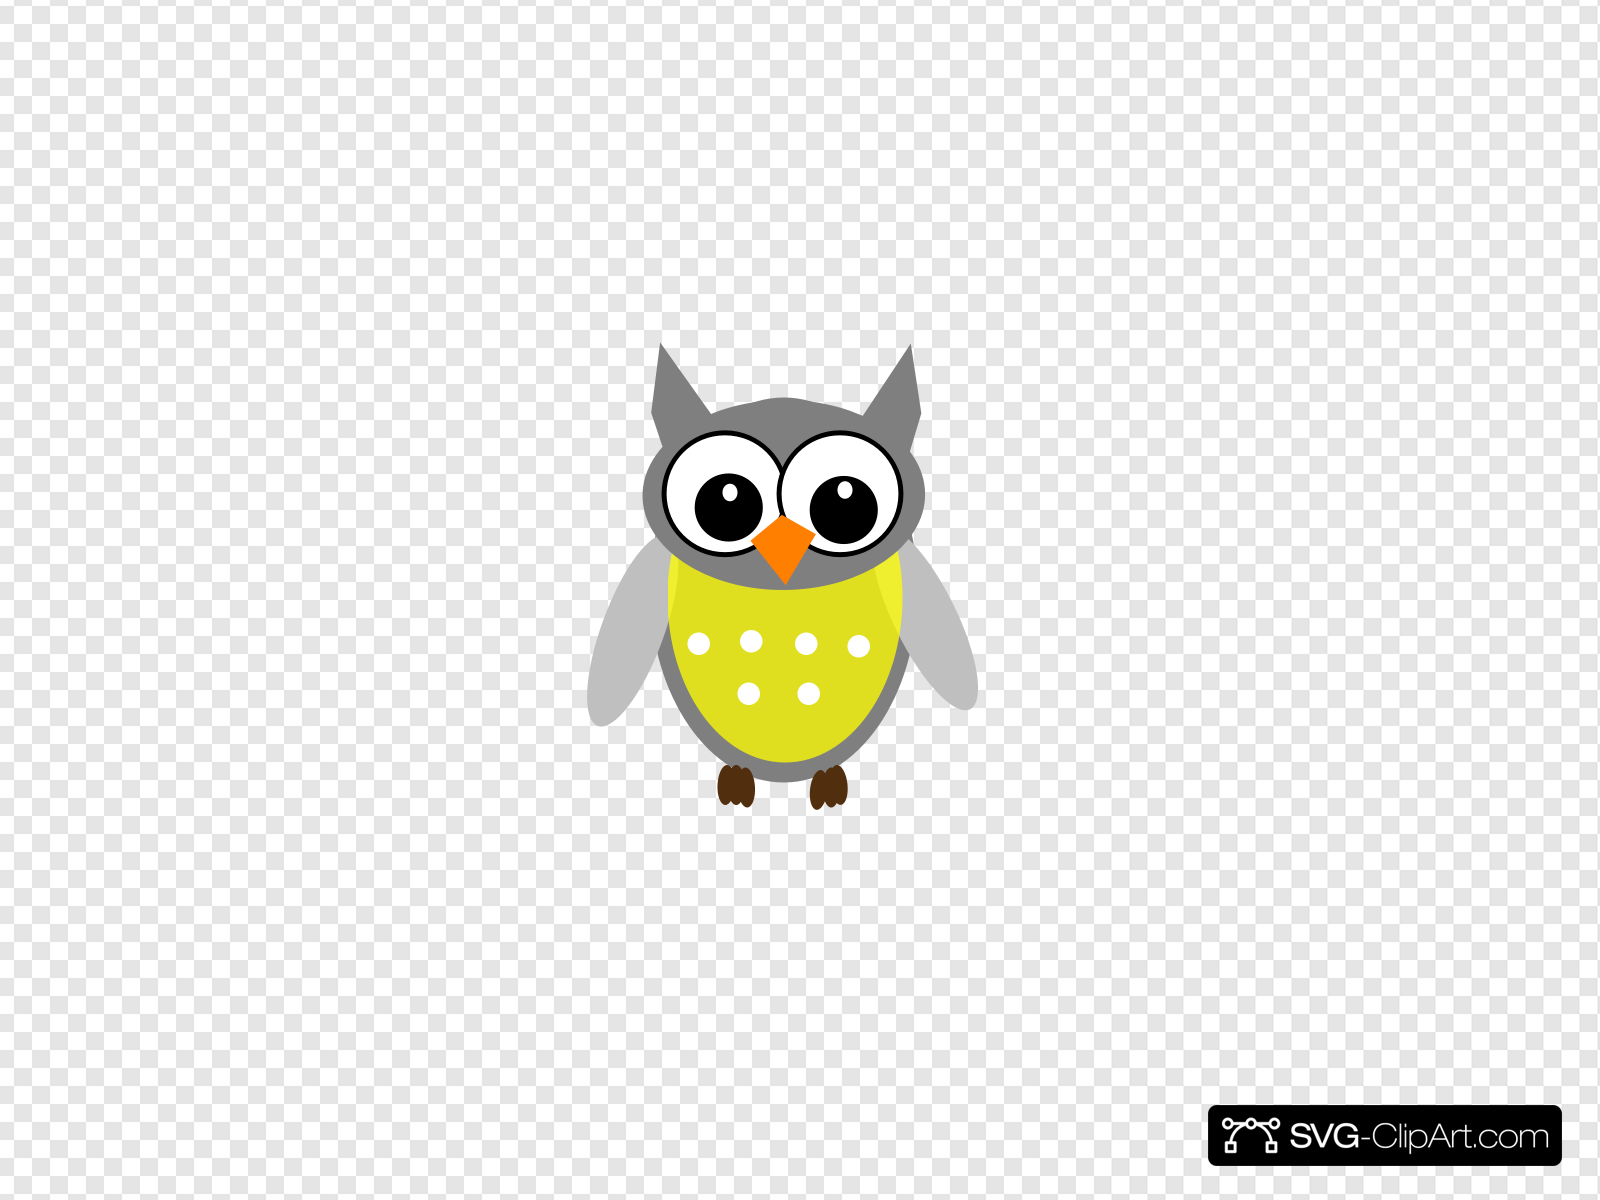 Yellow Gray Owl Clip art, Icon and SVG.